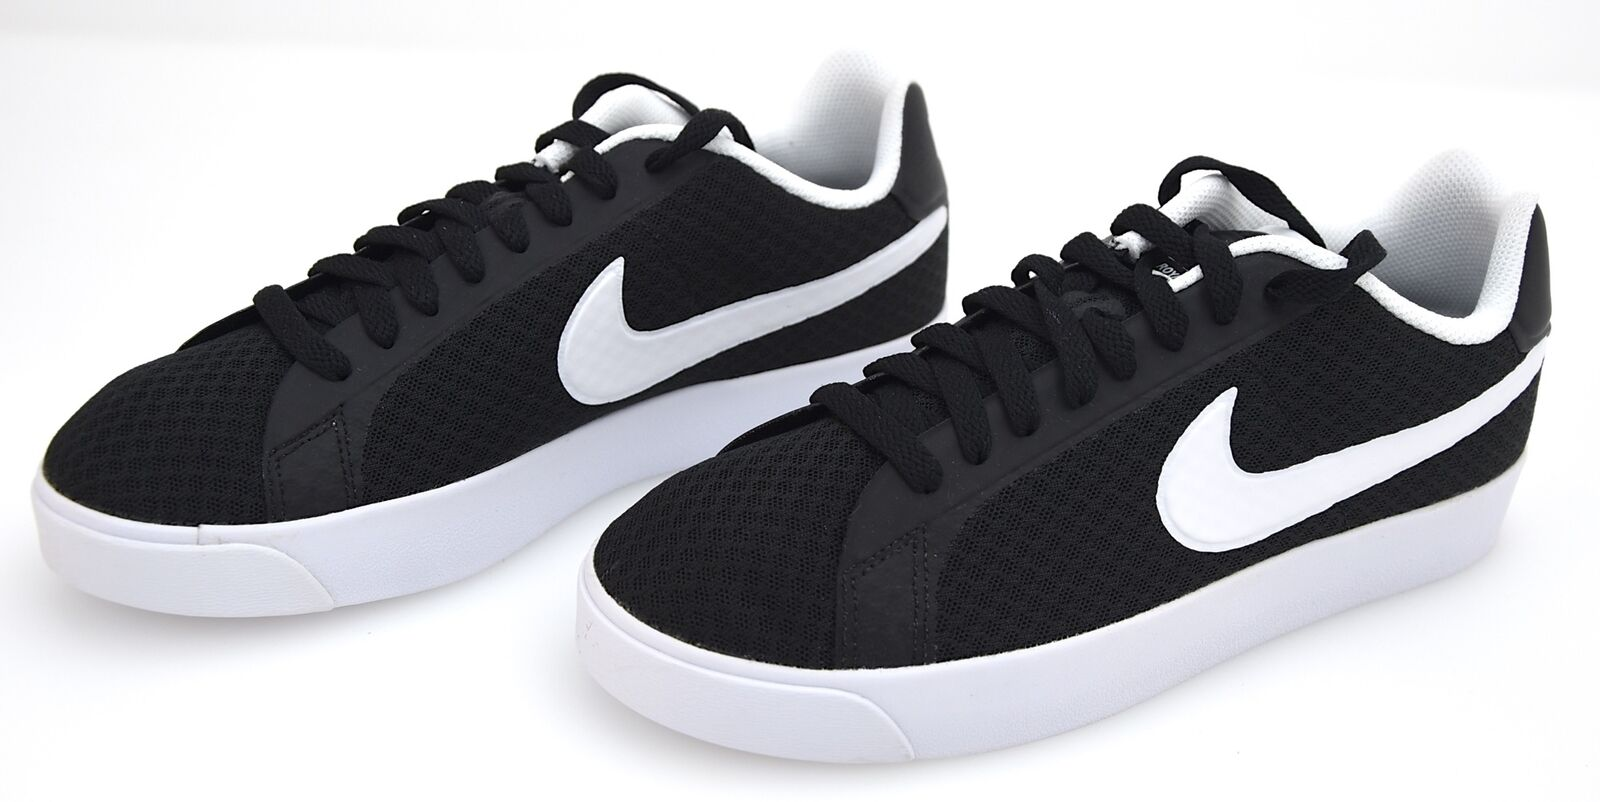 NIKE Homme Chaussures DEPORTIVAS ART. 833273 010 NIKE COURT ROYALE LW TXT